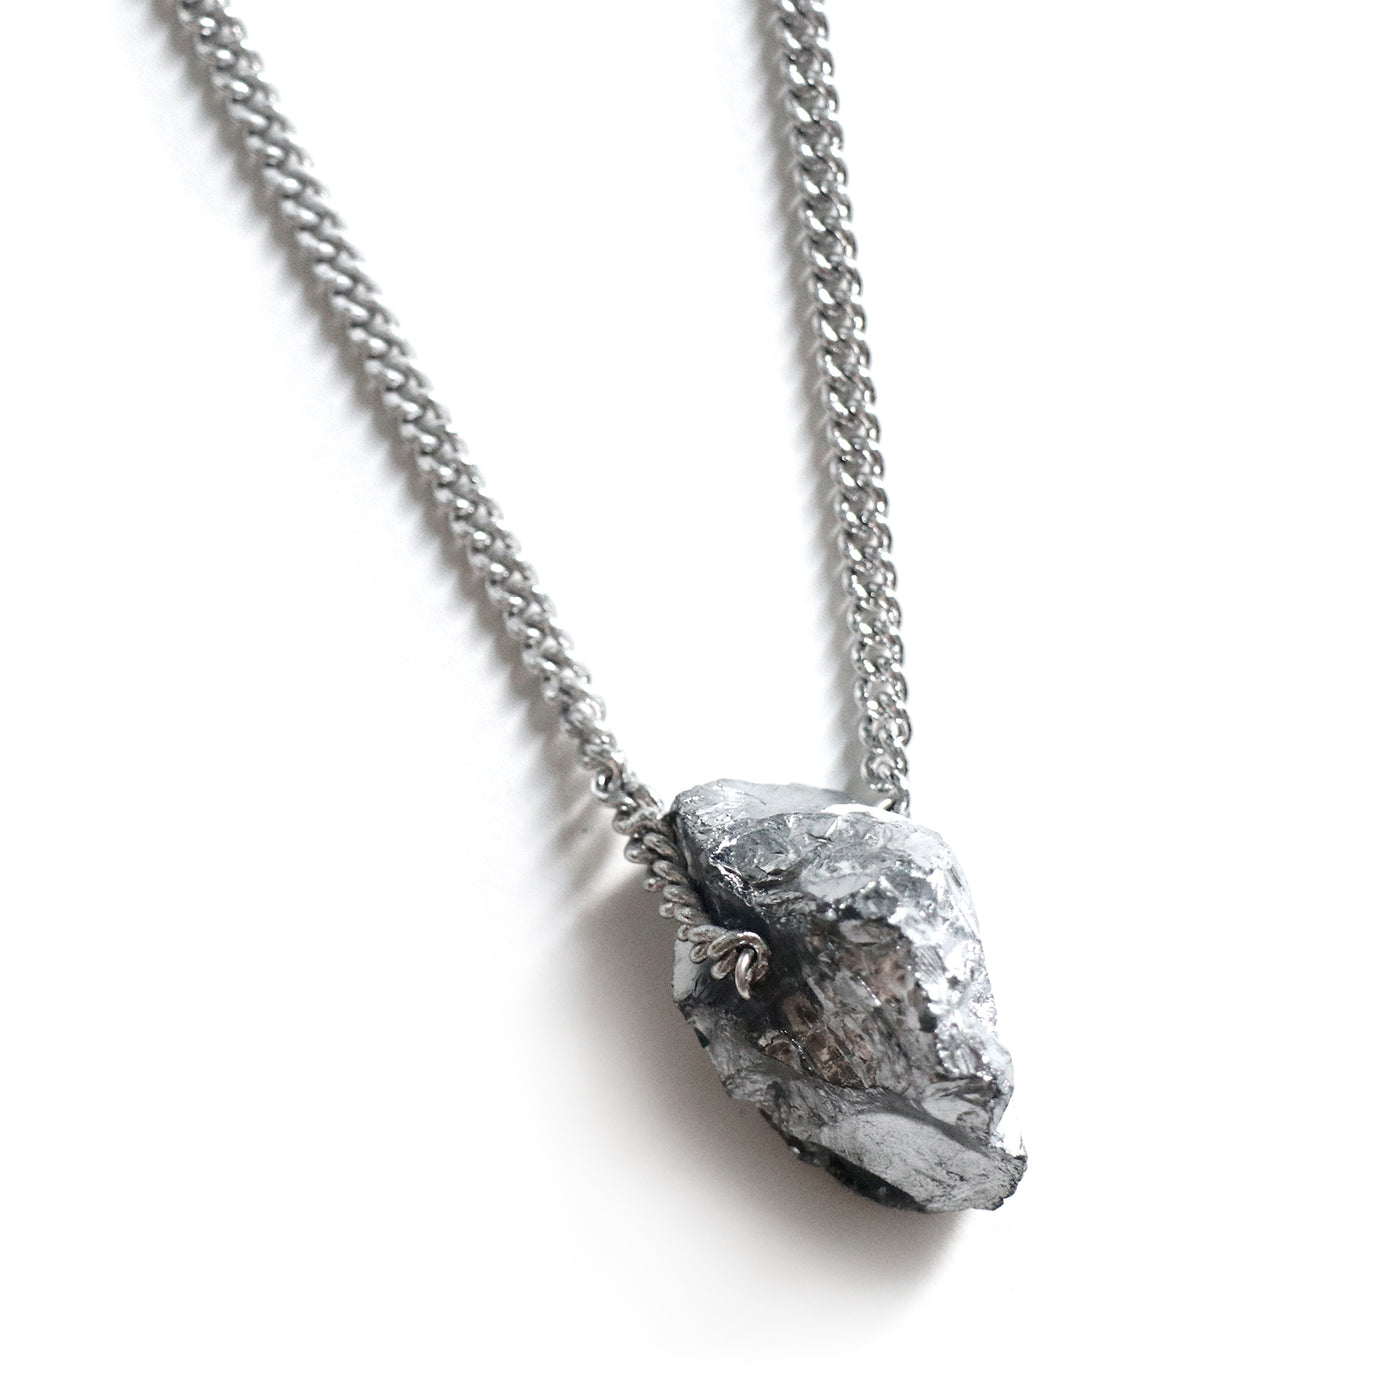 Silver Titanium Quartz Necklace - Chainless Brain